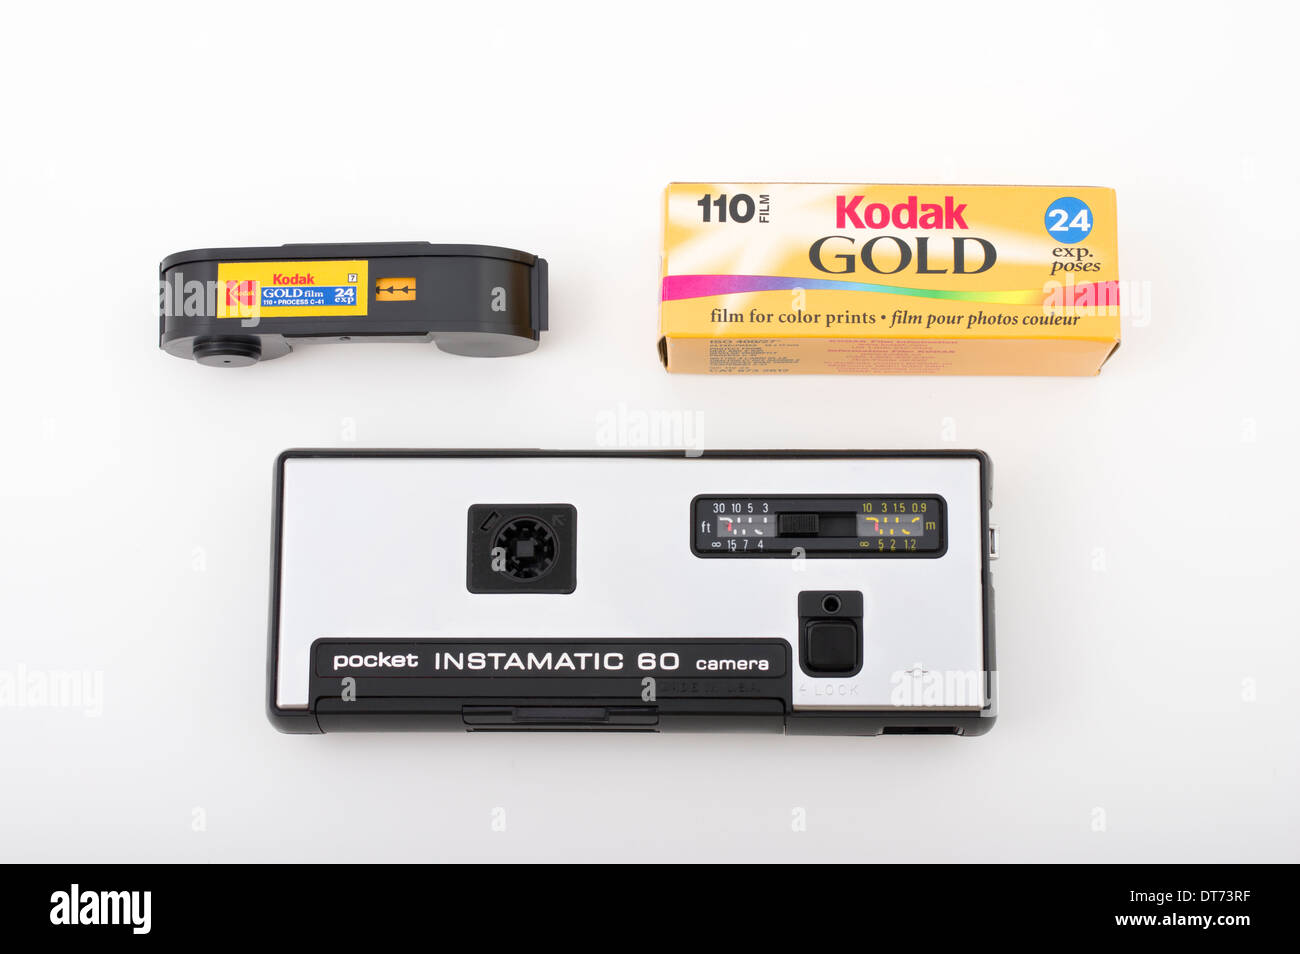 Appareil photo Kodak Instamatic 60 pour 110 films au format film. Photo Stock